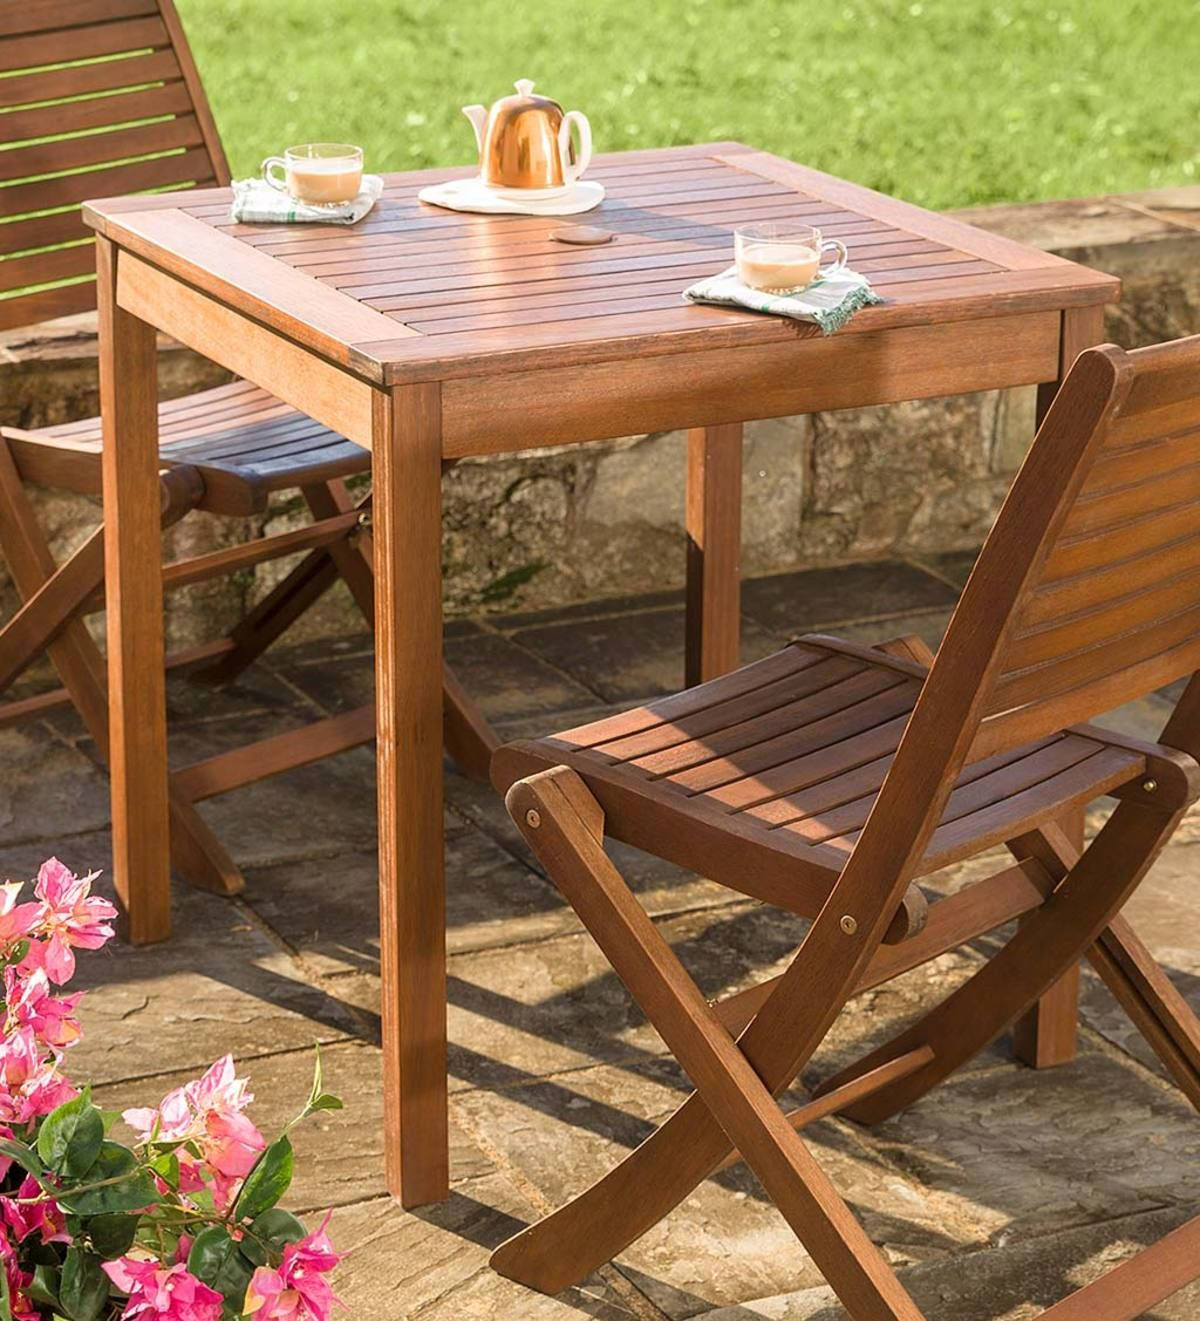 Eucalyptus Wood Outdoor Square Bistro Table Outdoor Furniture Sets Outdoor Wood Furniture Wood Patio Furniture